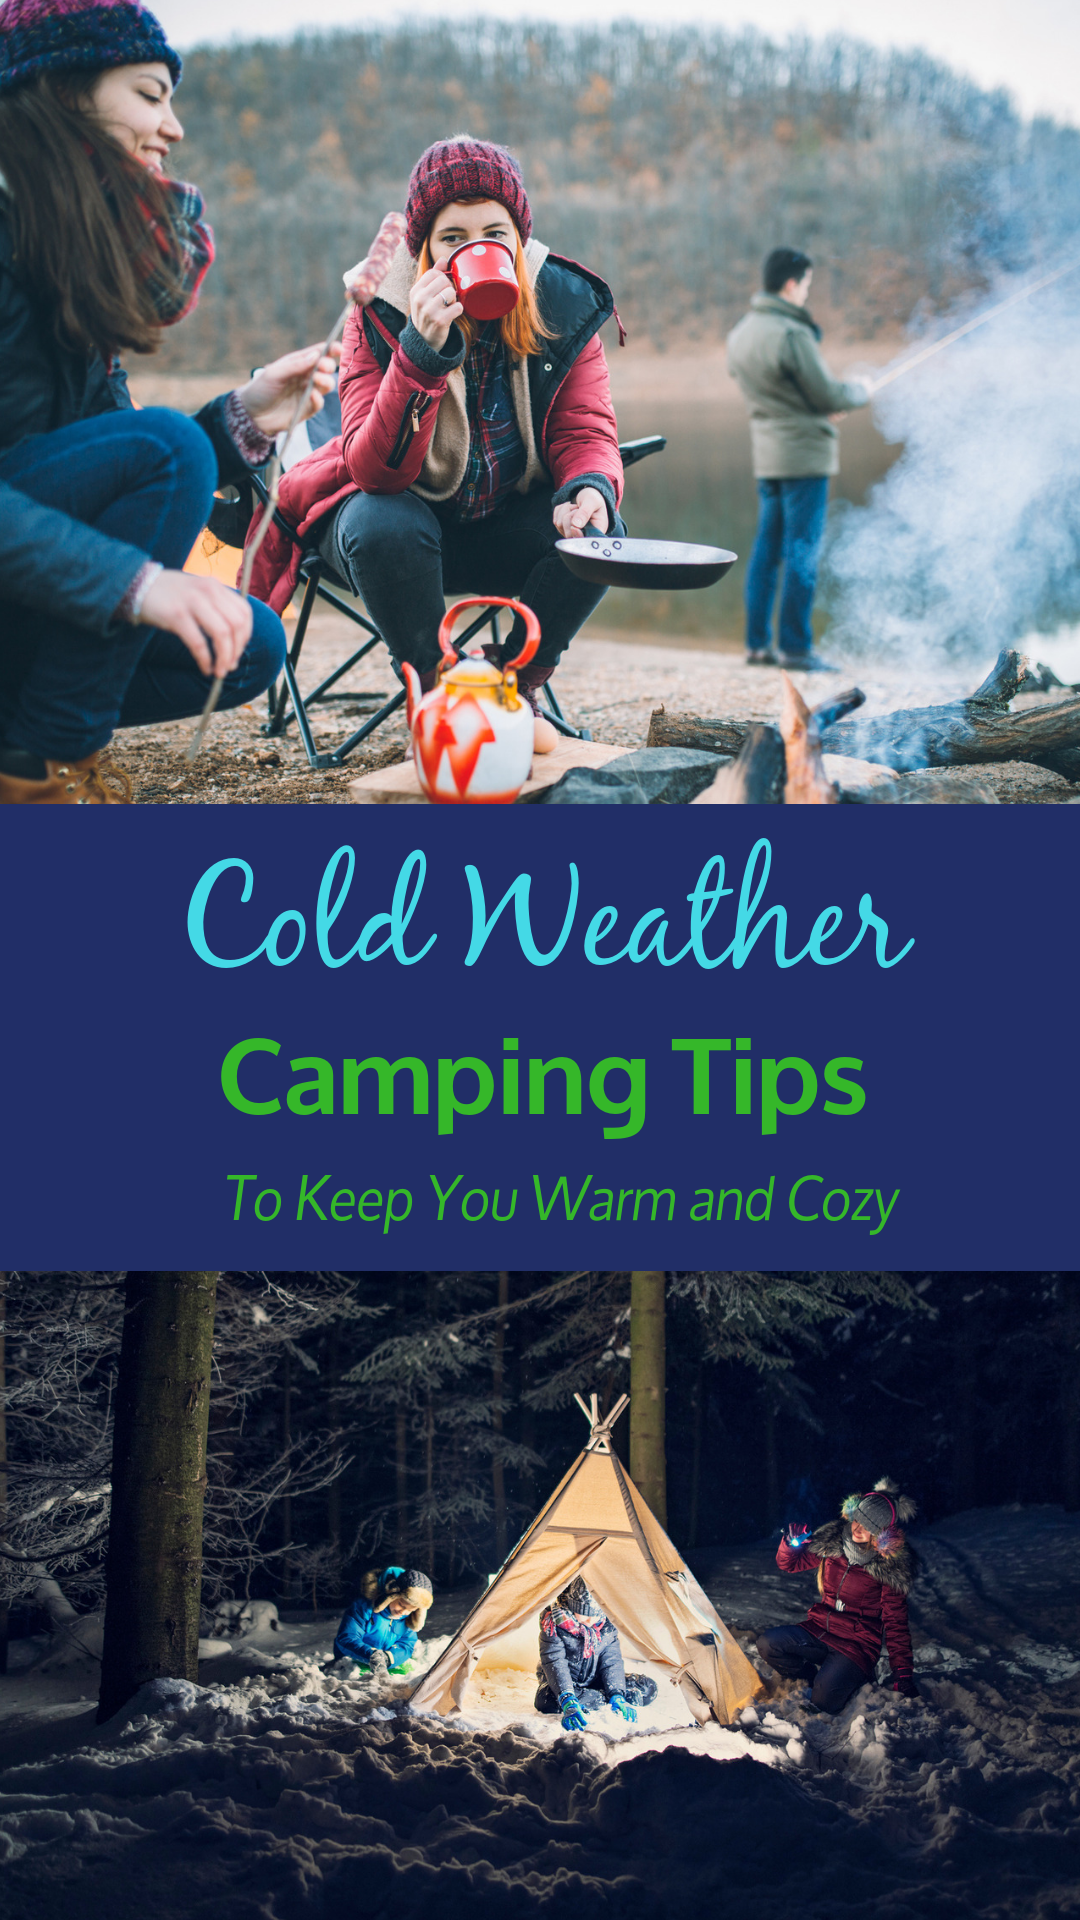 Cold Weather Camping Tips To Keep You Cozy